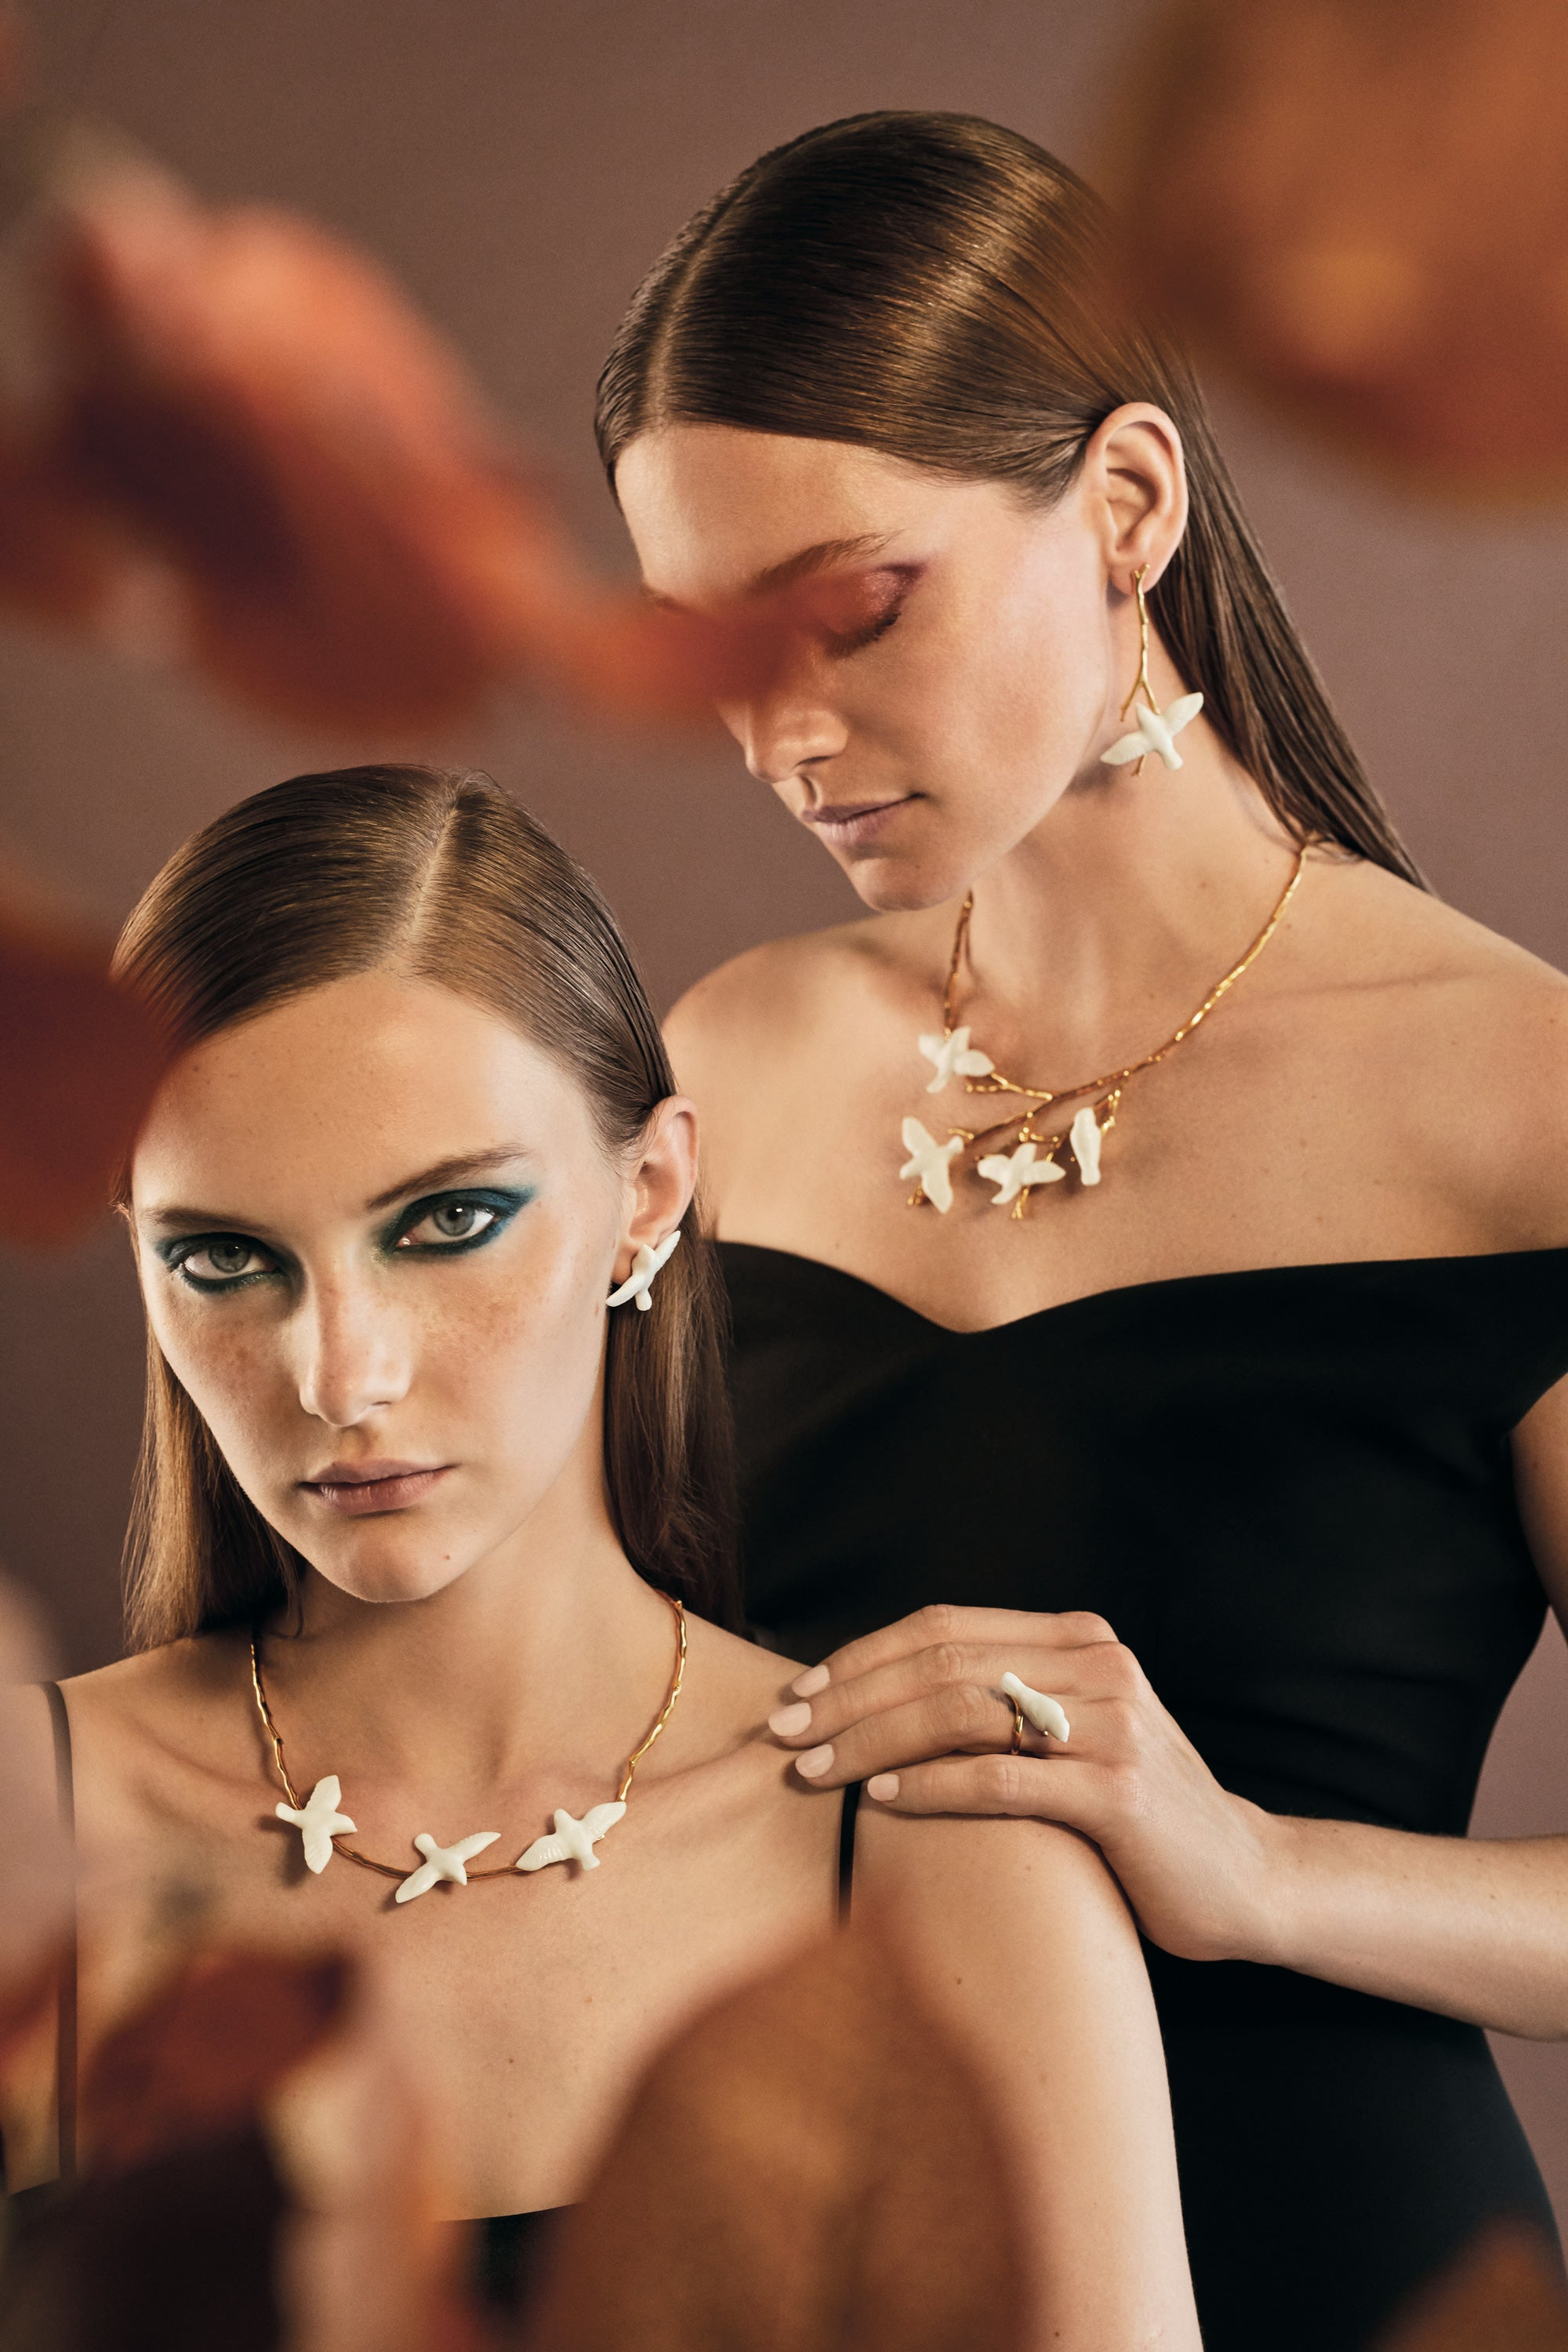 Lladro Magic Forest Jewellery Designed by London based Creative Agency Bodo Sperlein